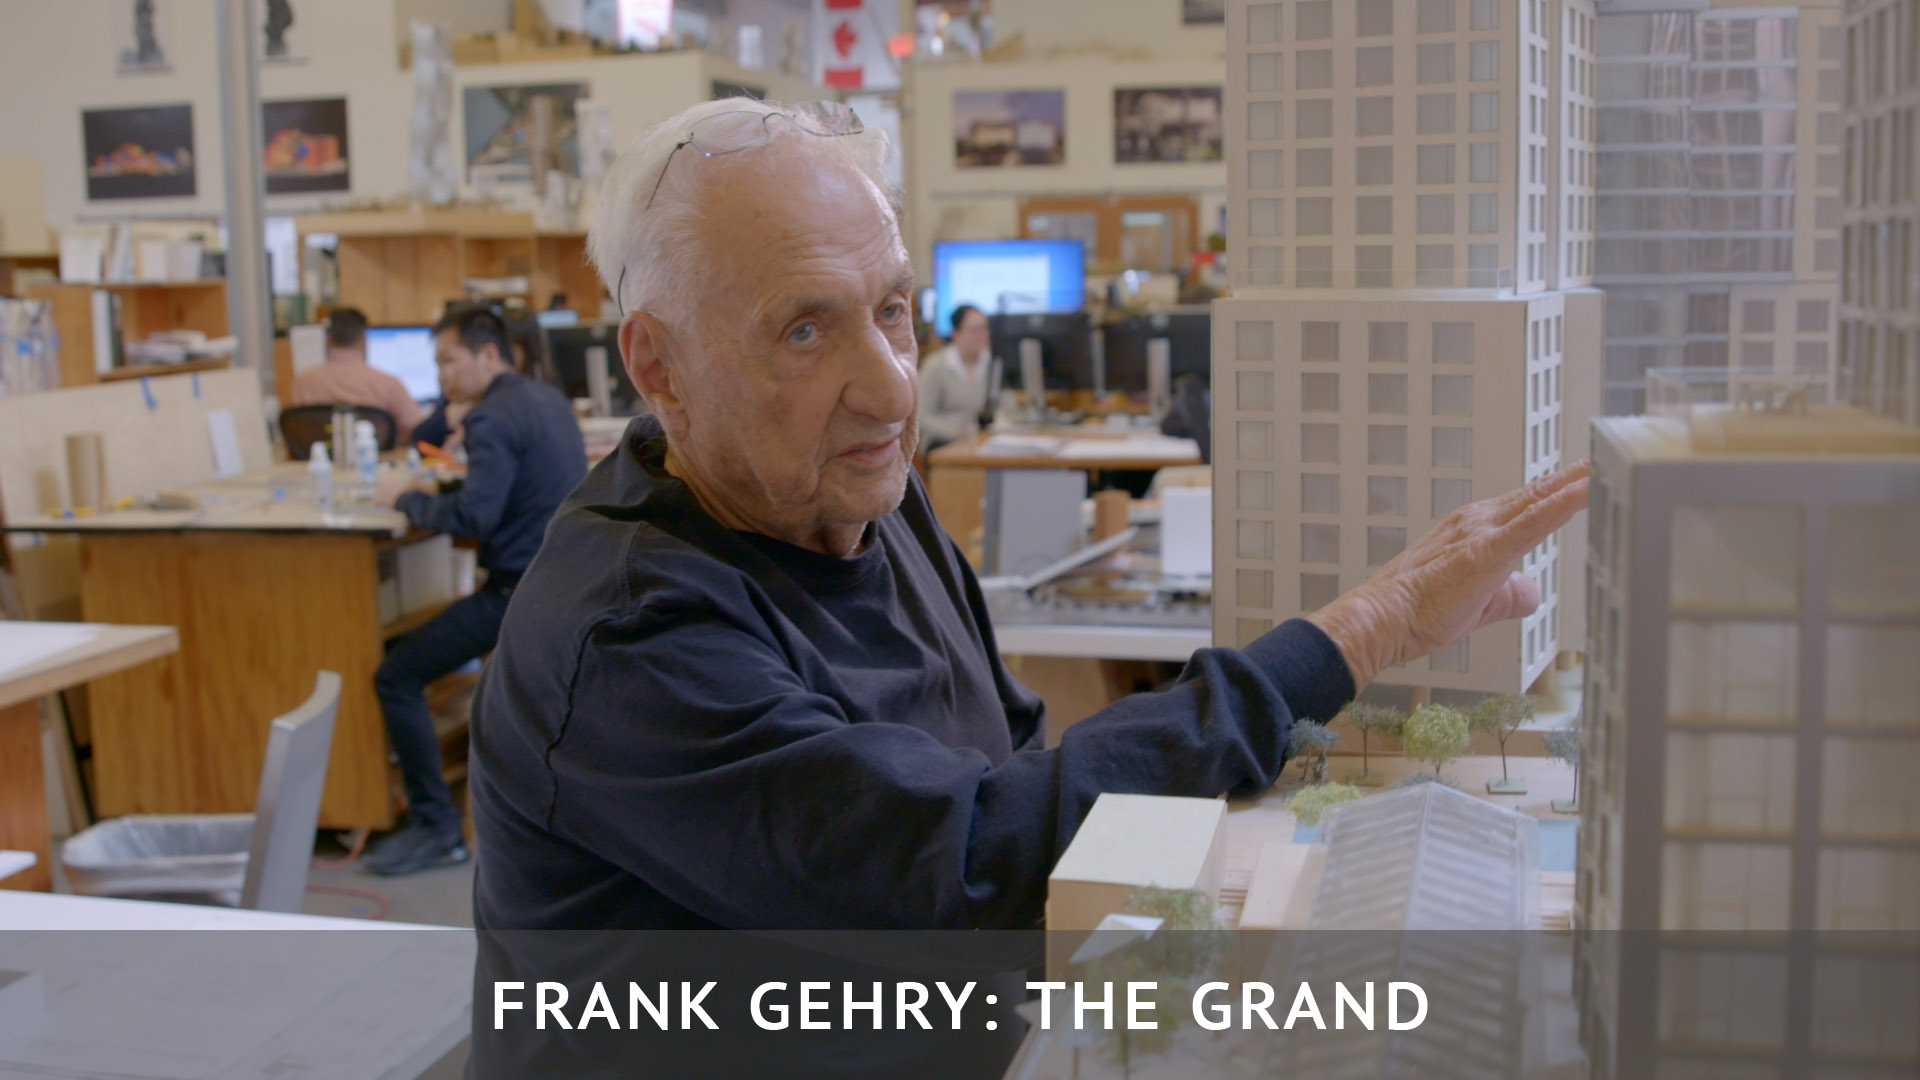 Frank Gehry: The Grand Color Grading / Post Production